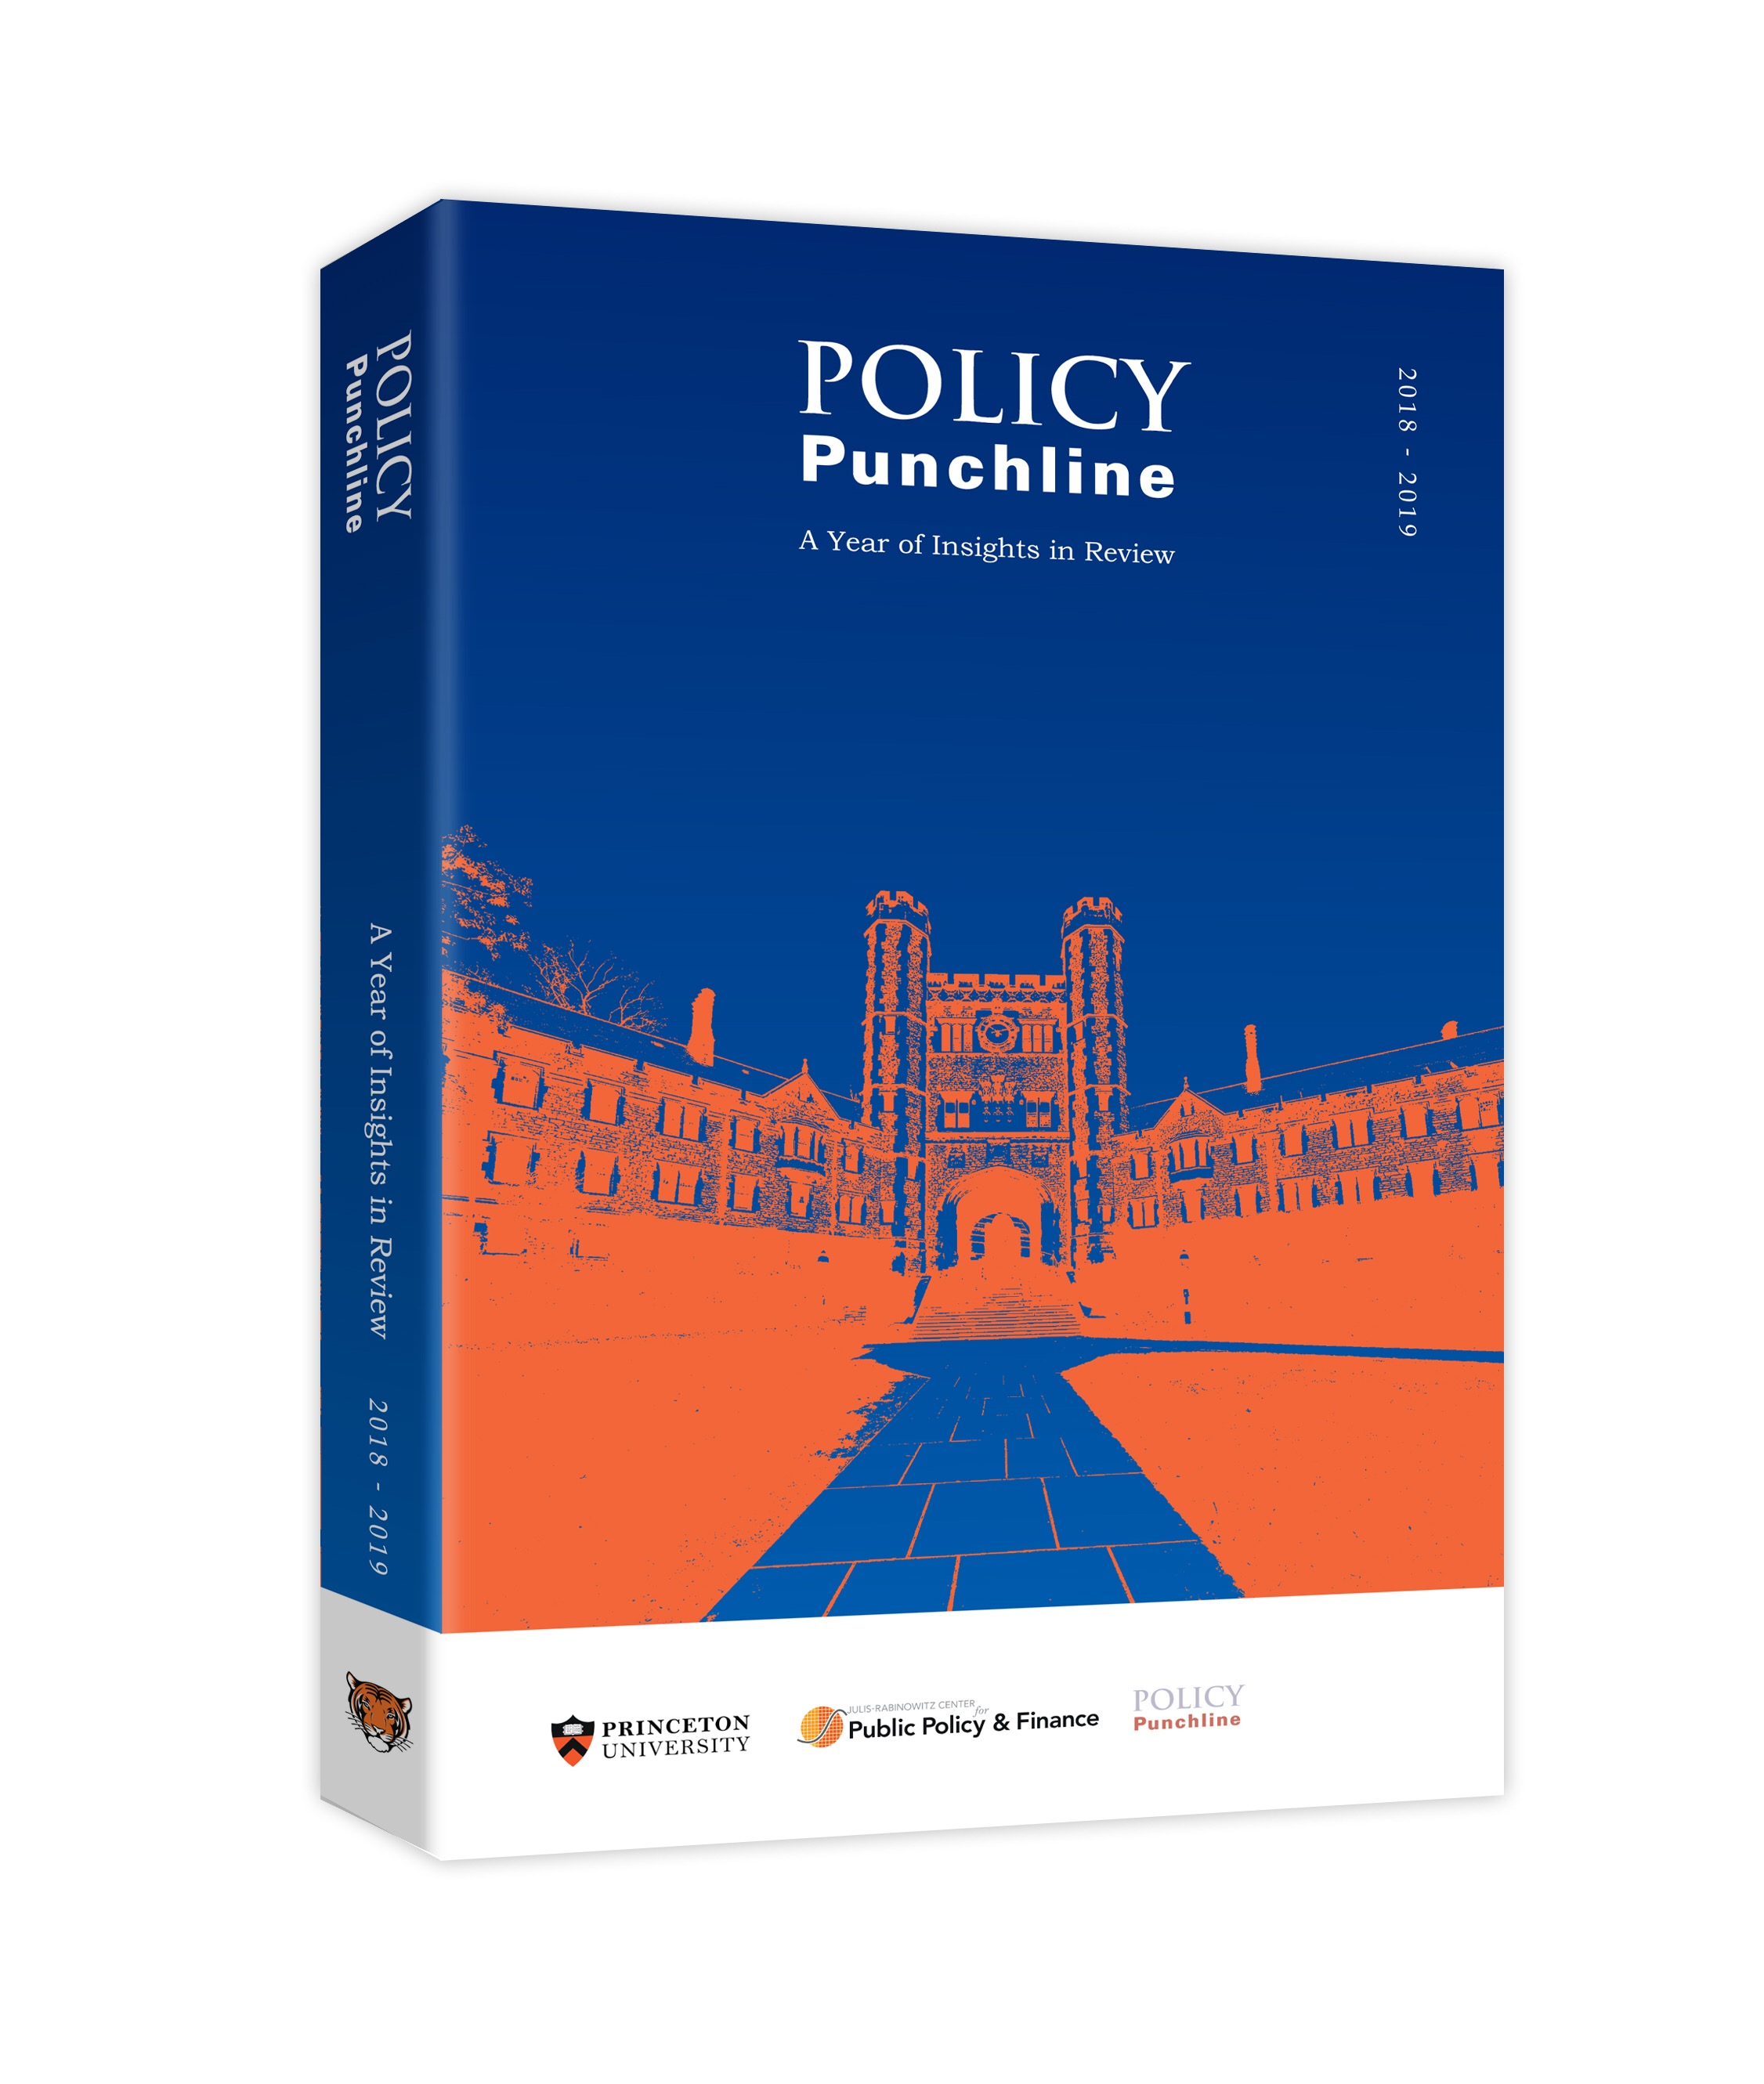 Policy Punchline: A Year of Insights in Review 2018-2019   Book completed; currently in talks with publishers for release  Please contact us if you would like an advanced copy